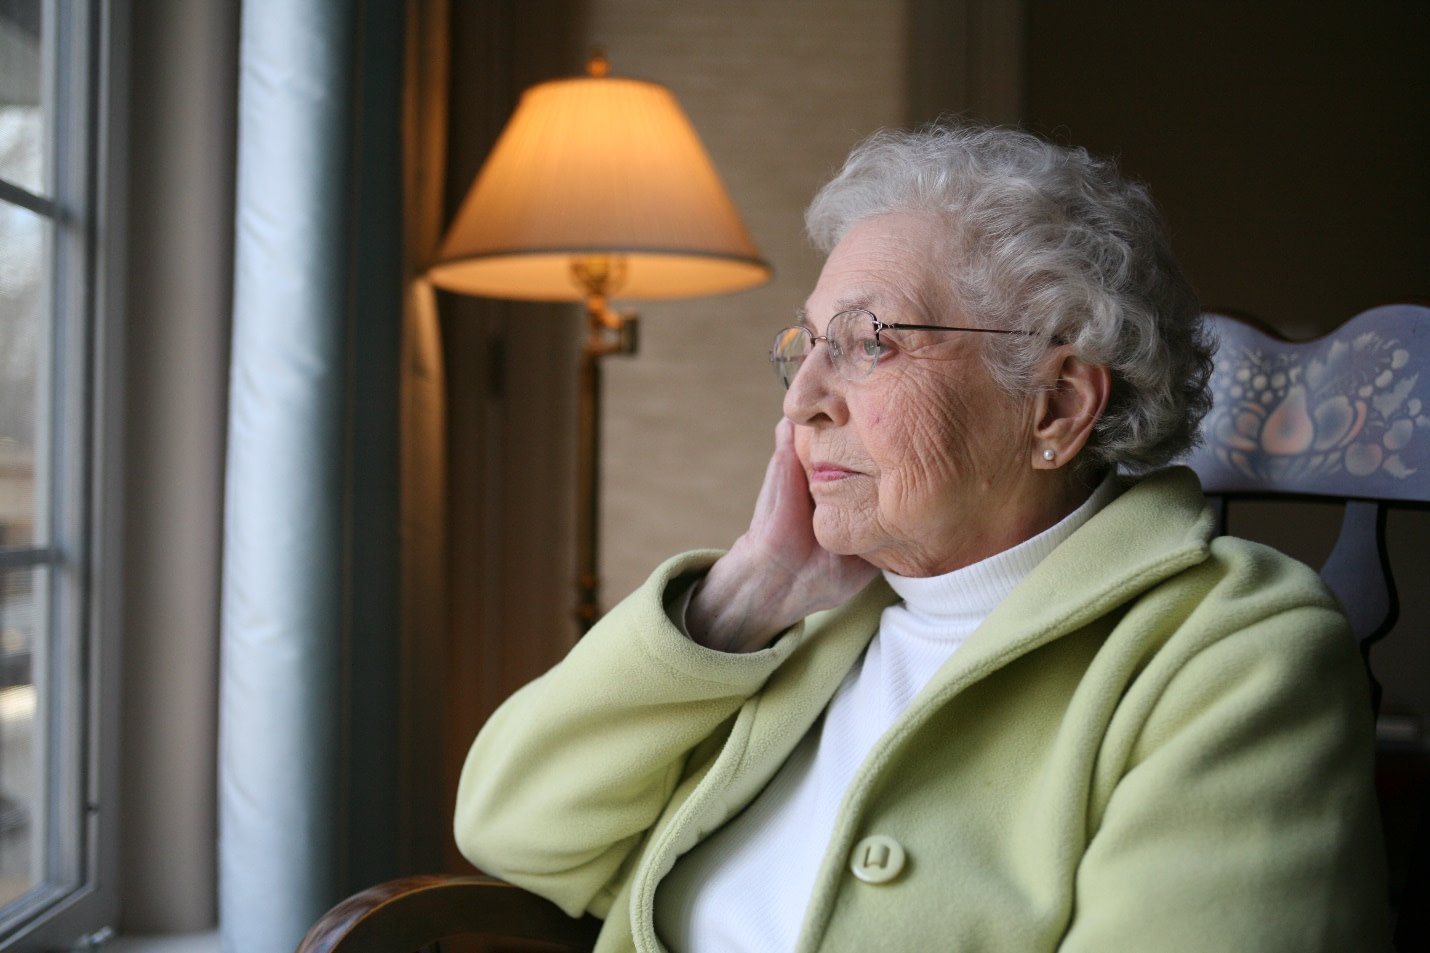 Sun City Seniors can't get out a lot in the summer because of the heat